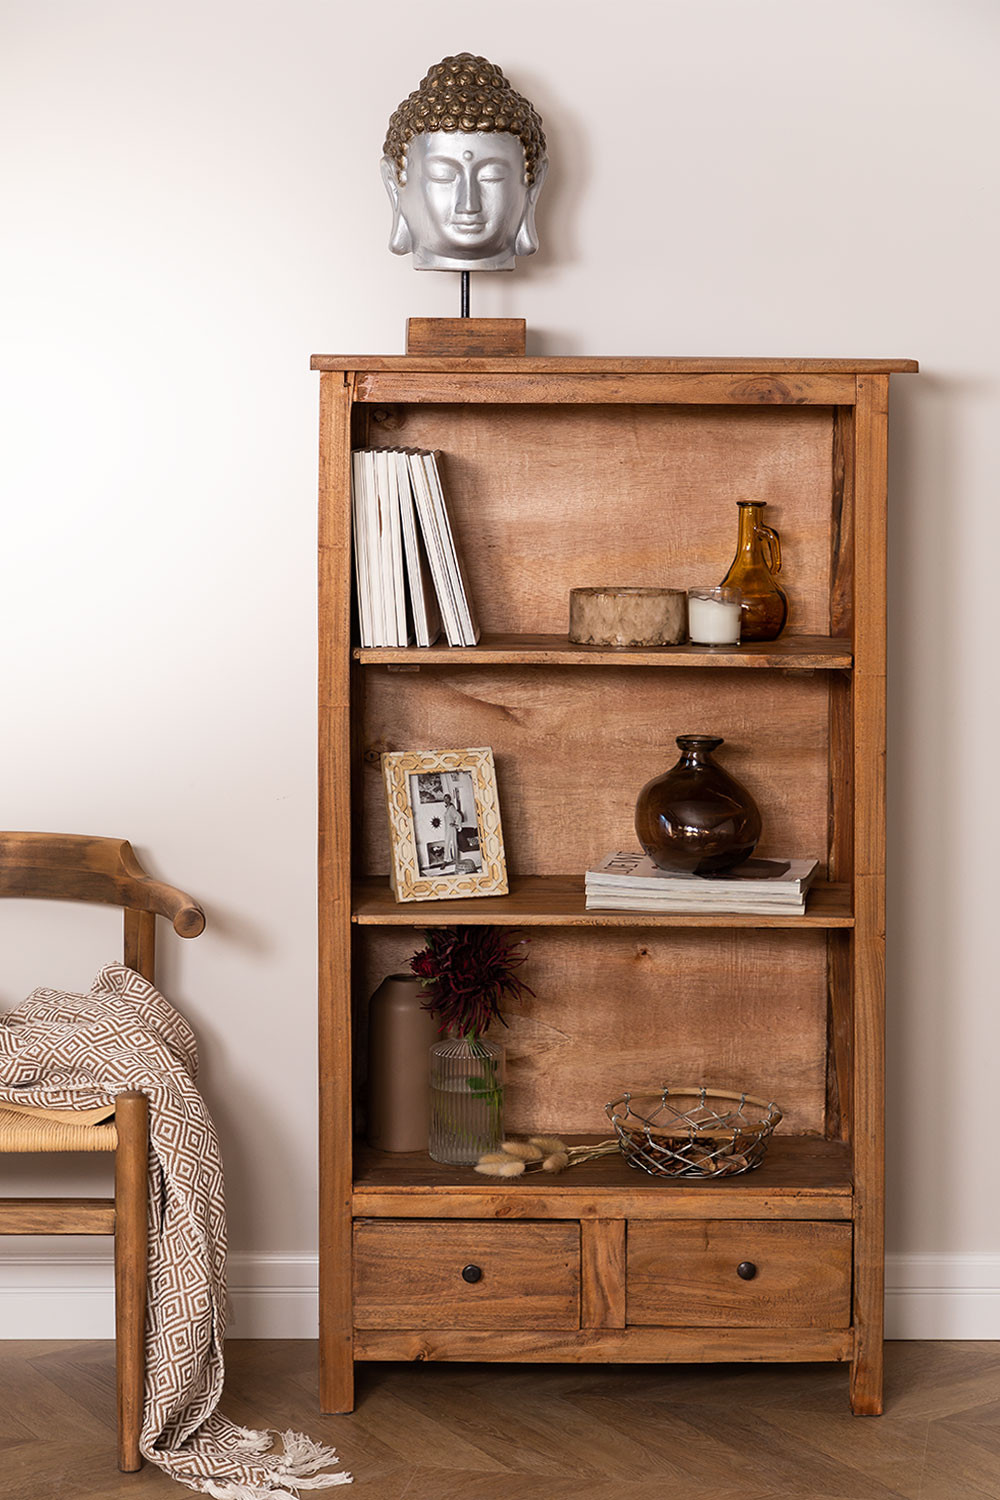 Set of 2 Bookcases in Recycled Wood Jara, gallery image 1